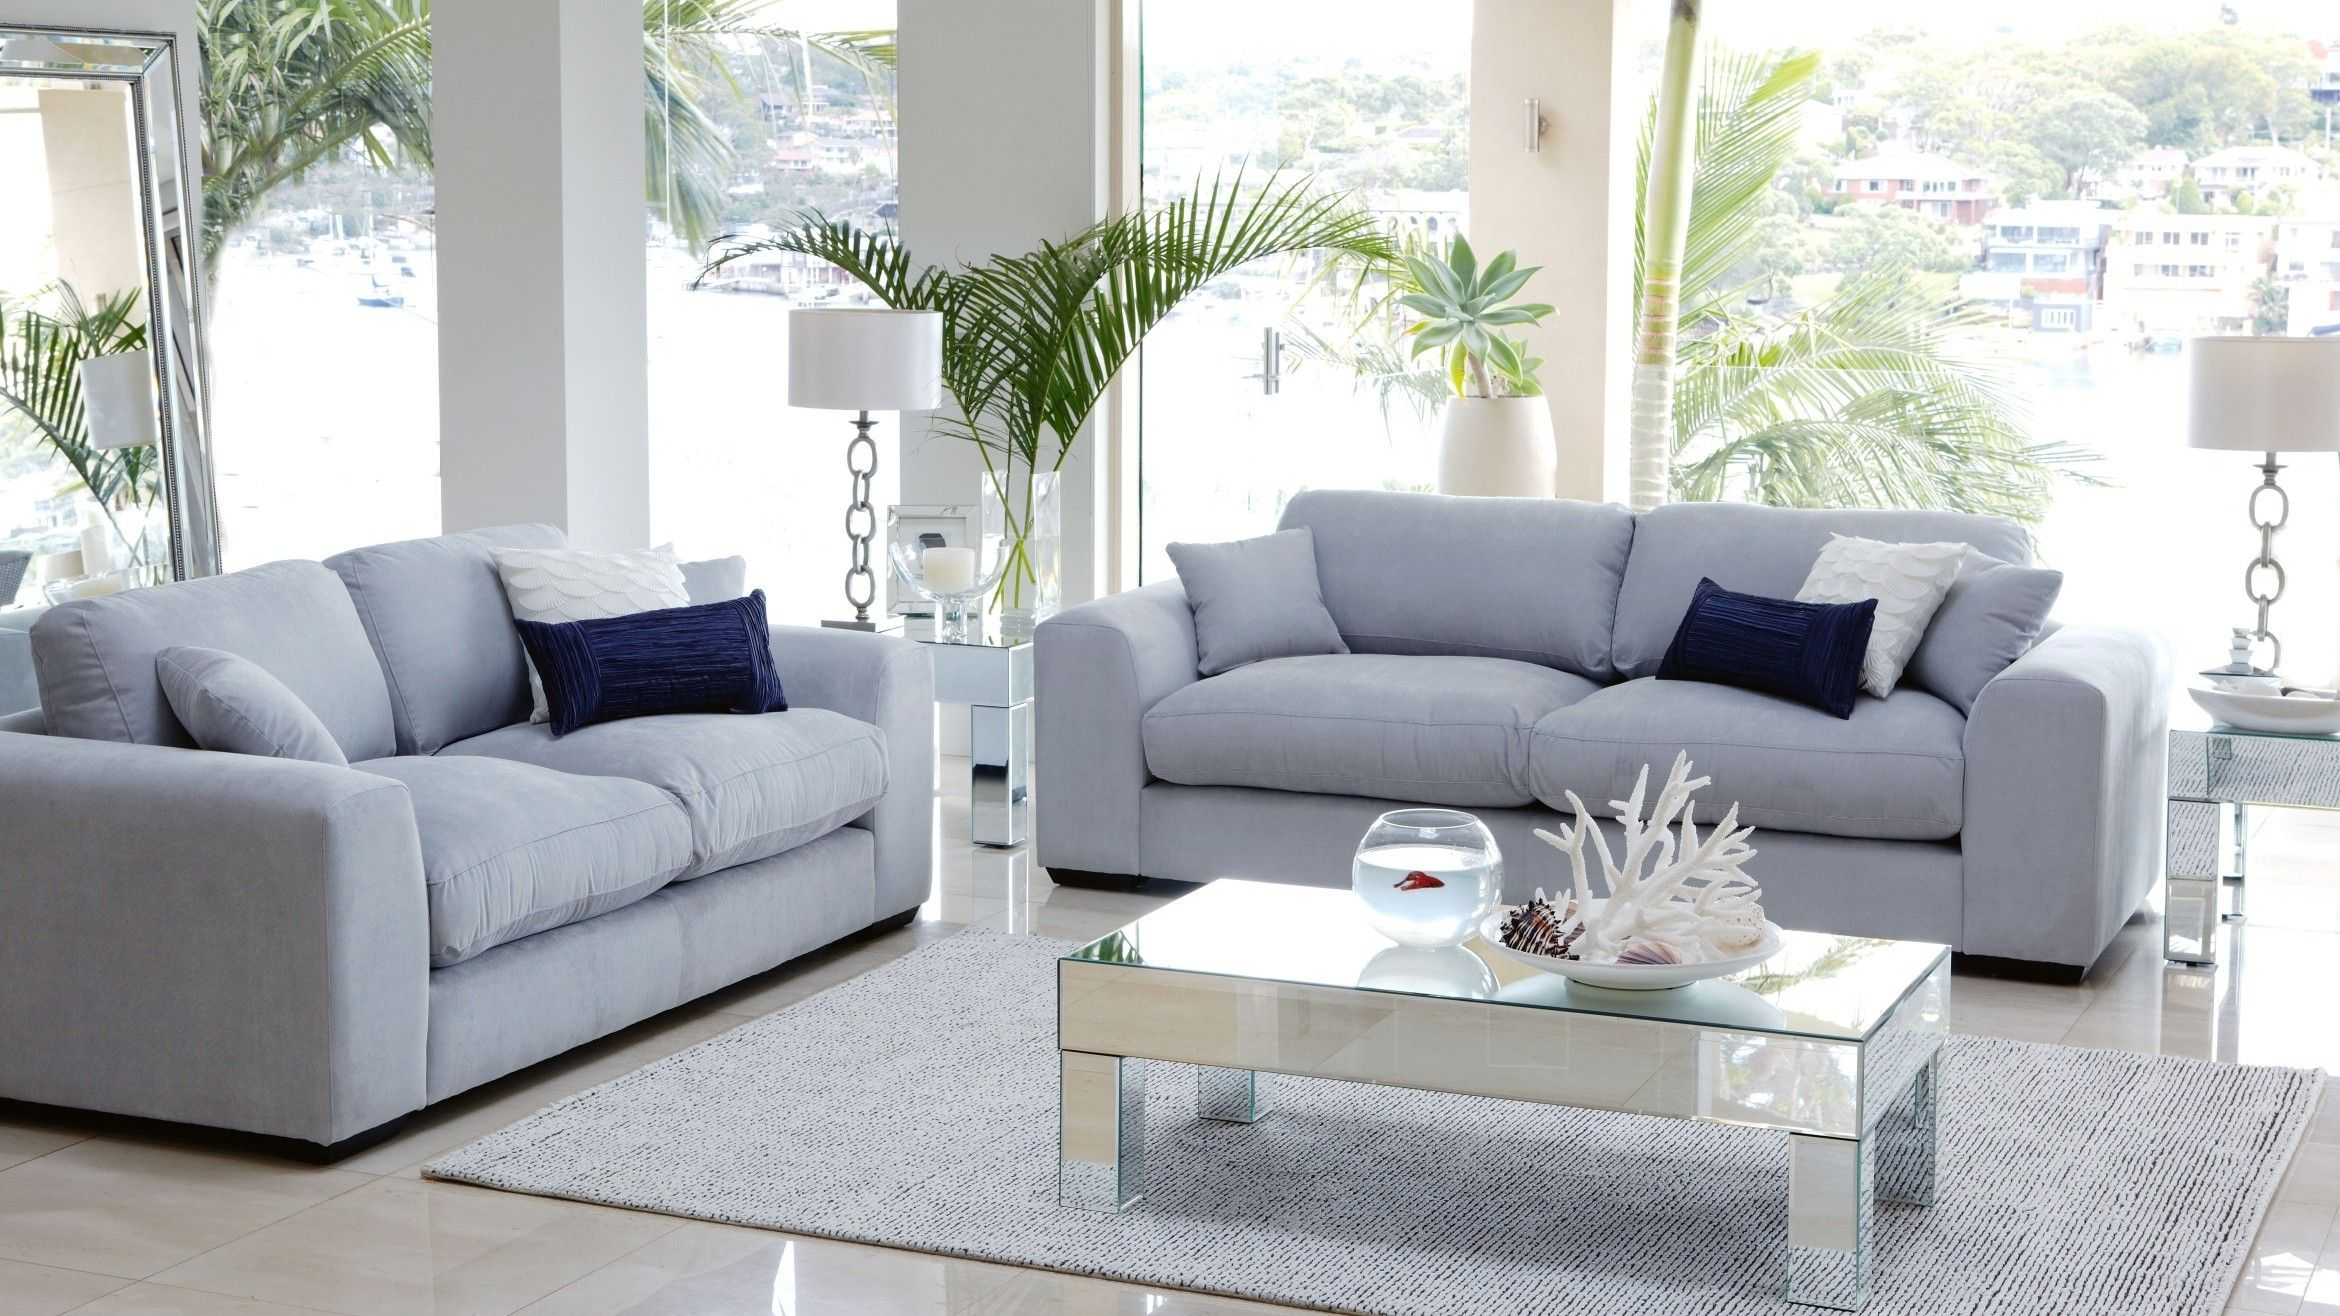 Best Quality Sofas Australia Catalina 2 Piece Fabric Lounge Suite I Need A 3 Seater